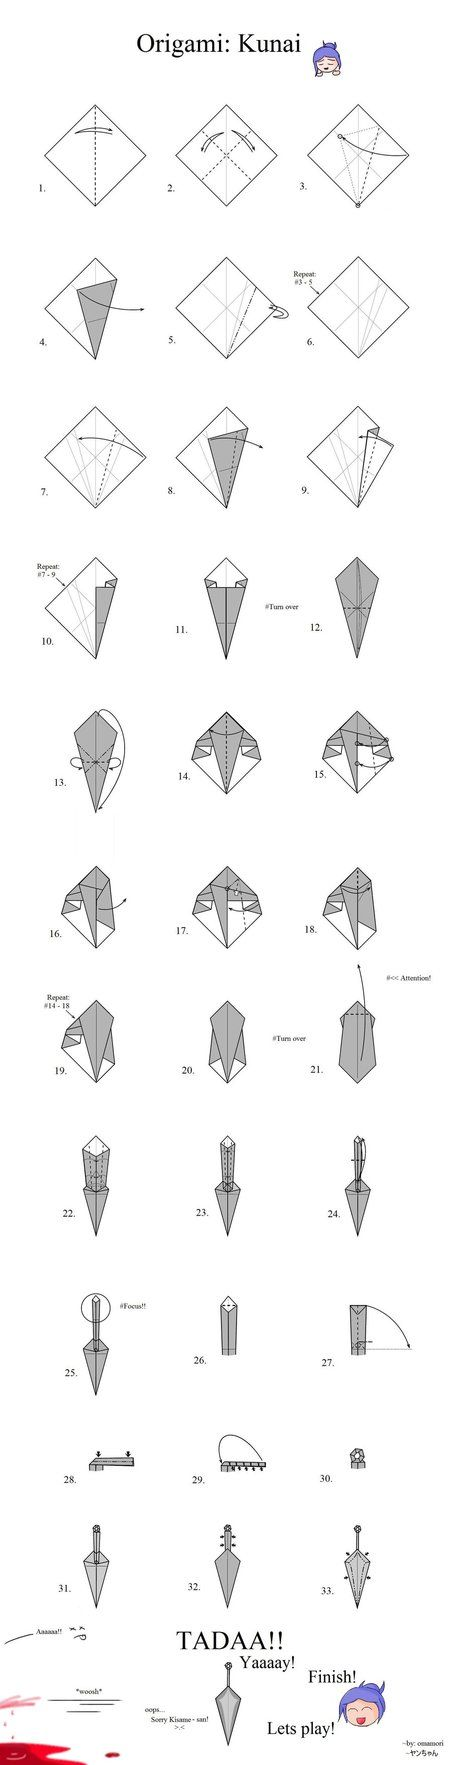 Origami Kunai from Deviant art... Could be used for a Konan cosplay (Naruto Shippuden)